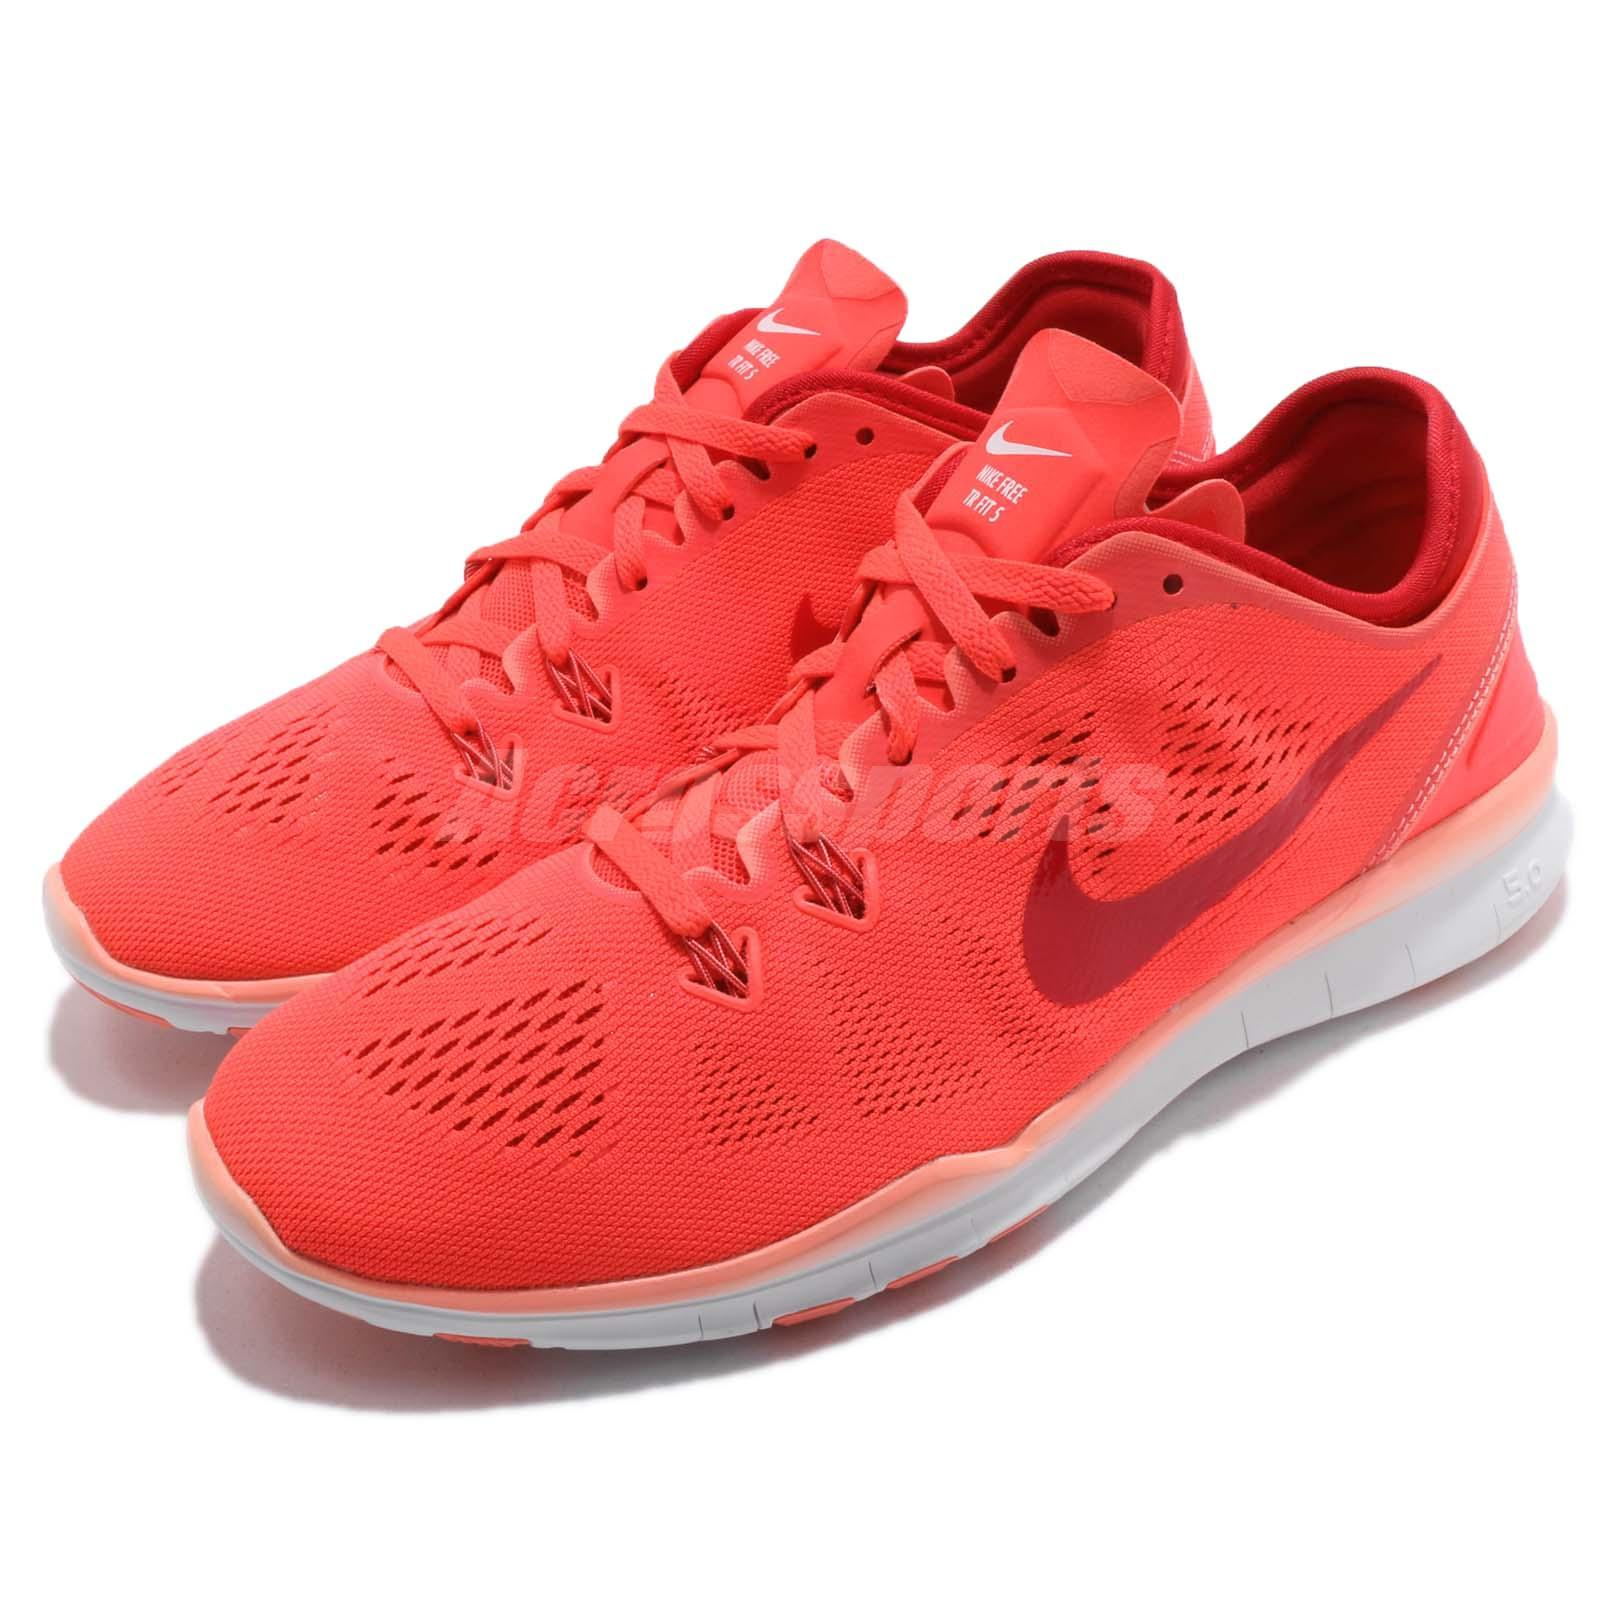 823c444036dc3 Nike Wmns Free 5.0 TR Fit 5 V Bright Crimson Red Women Cross Training  704674601 - mainstreetblytheville.org